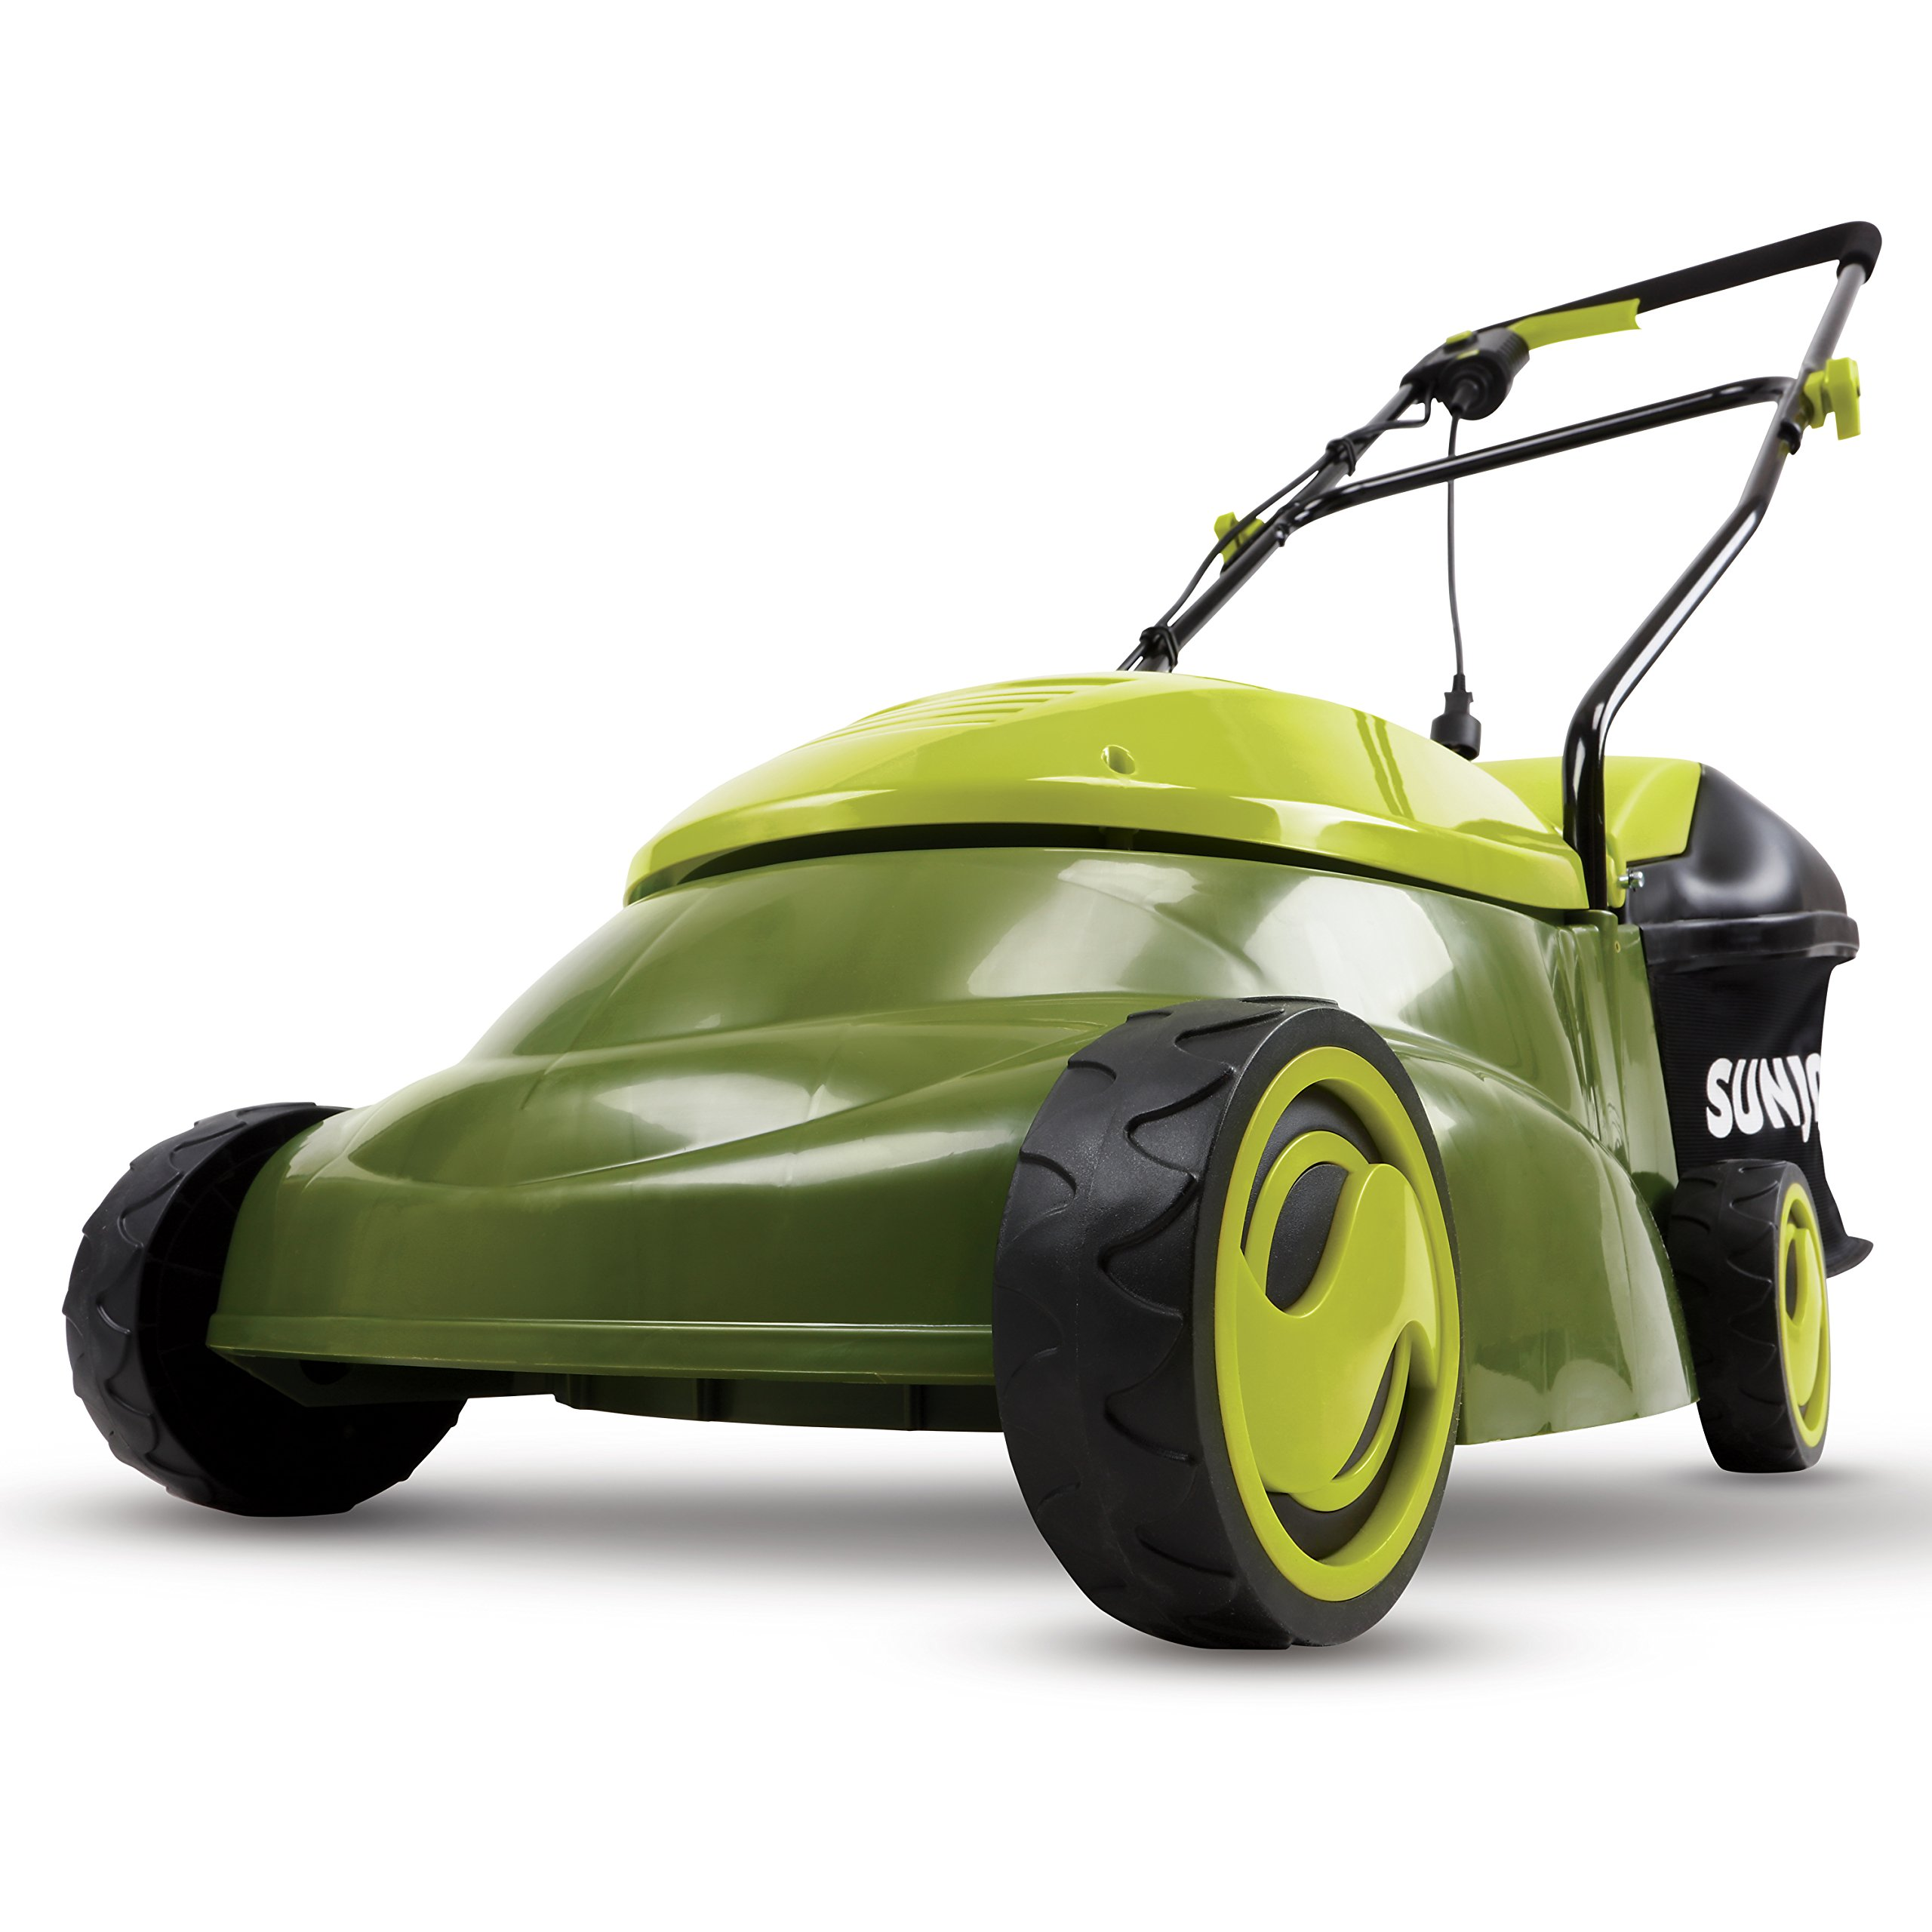 Sun Joe MJ401E-PRO 14 inch 13 Amp Electric Lawn Mower w/Side Discharge Chute, 14'' by Sun Joe